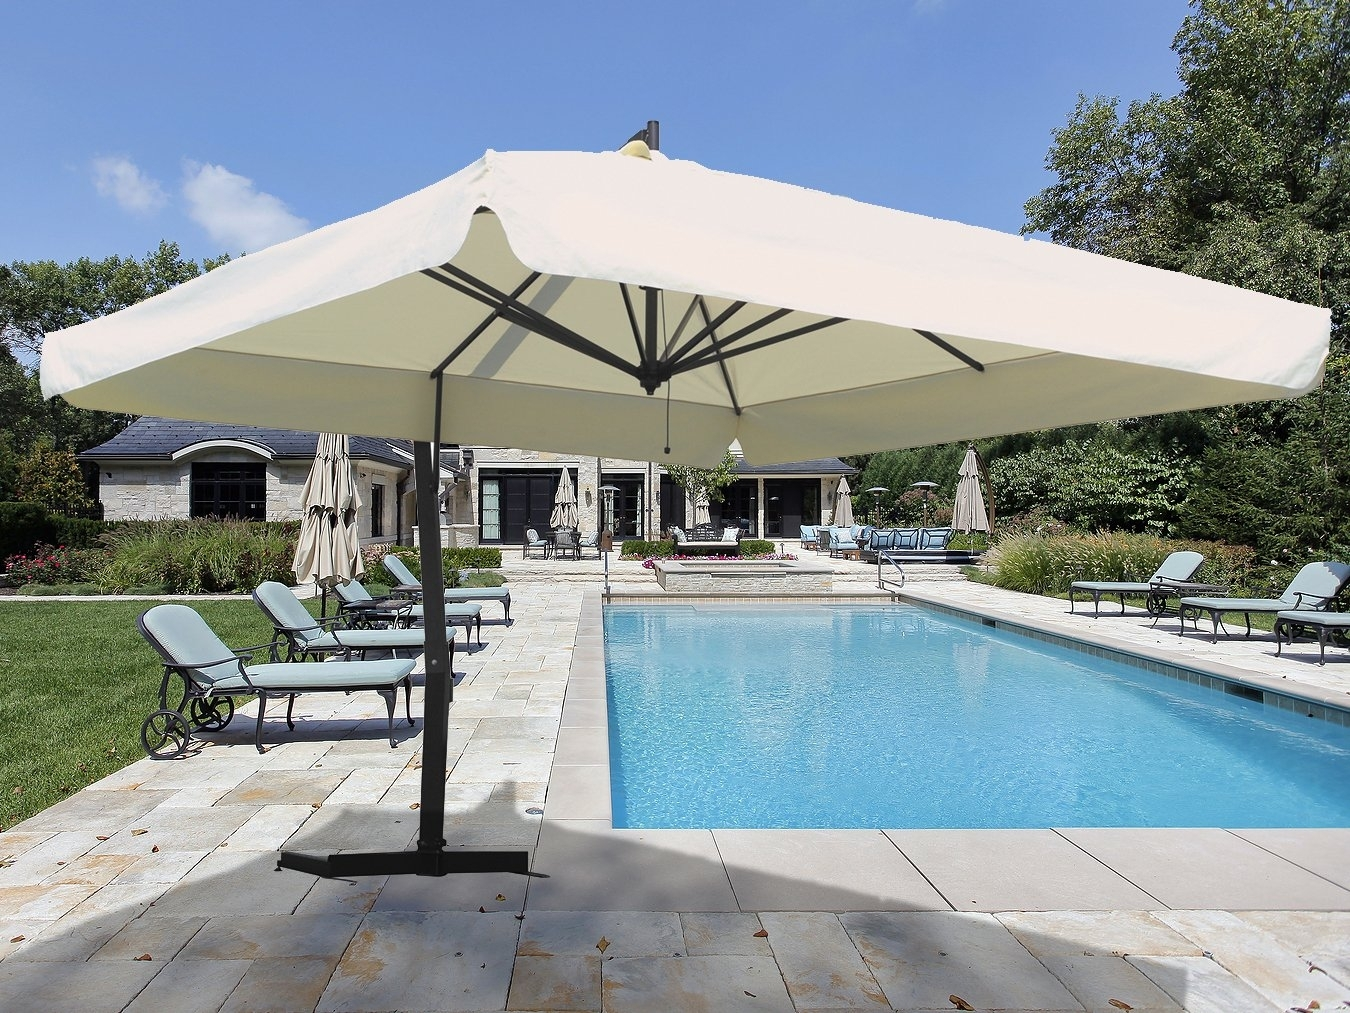 Image of: Patio Patio Unbrellas Commercial Patio Umbrellas Wholesale Patio In Commercial Outdoor Pool Furniture Good Commercial Outdoor Pool Furniture